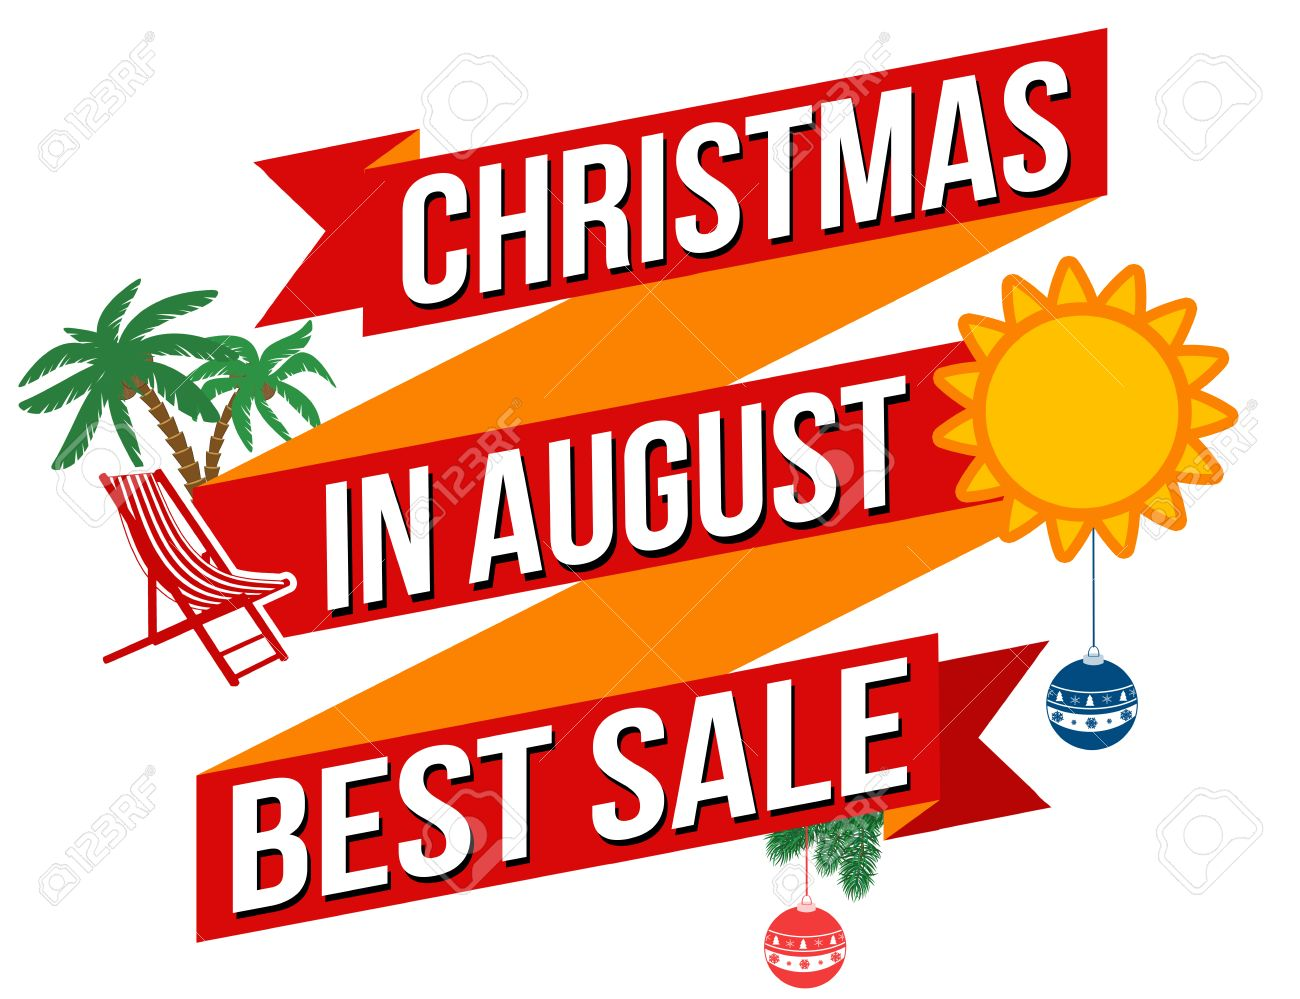 Christmas in august best sale banner design over a white background.